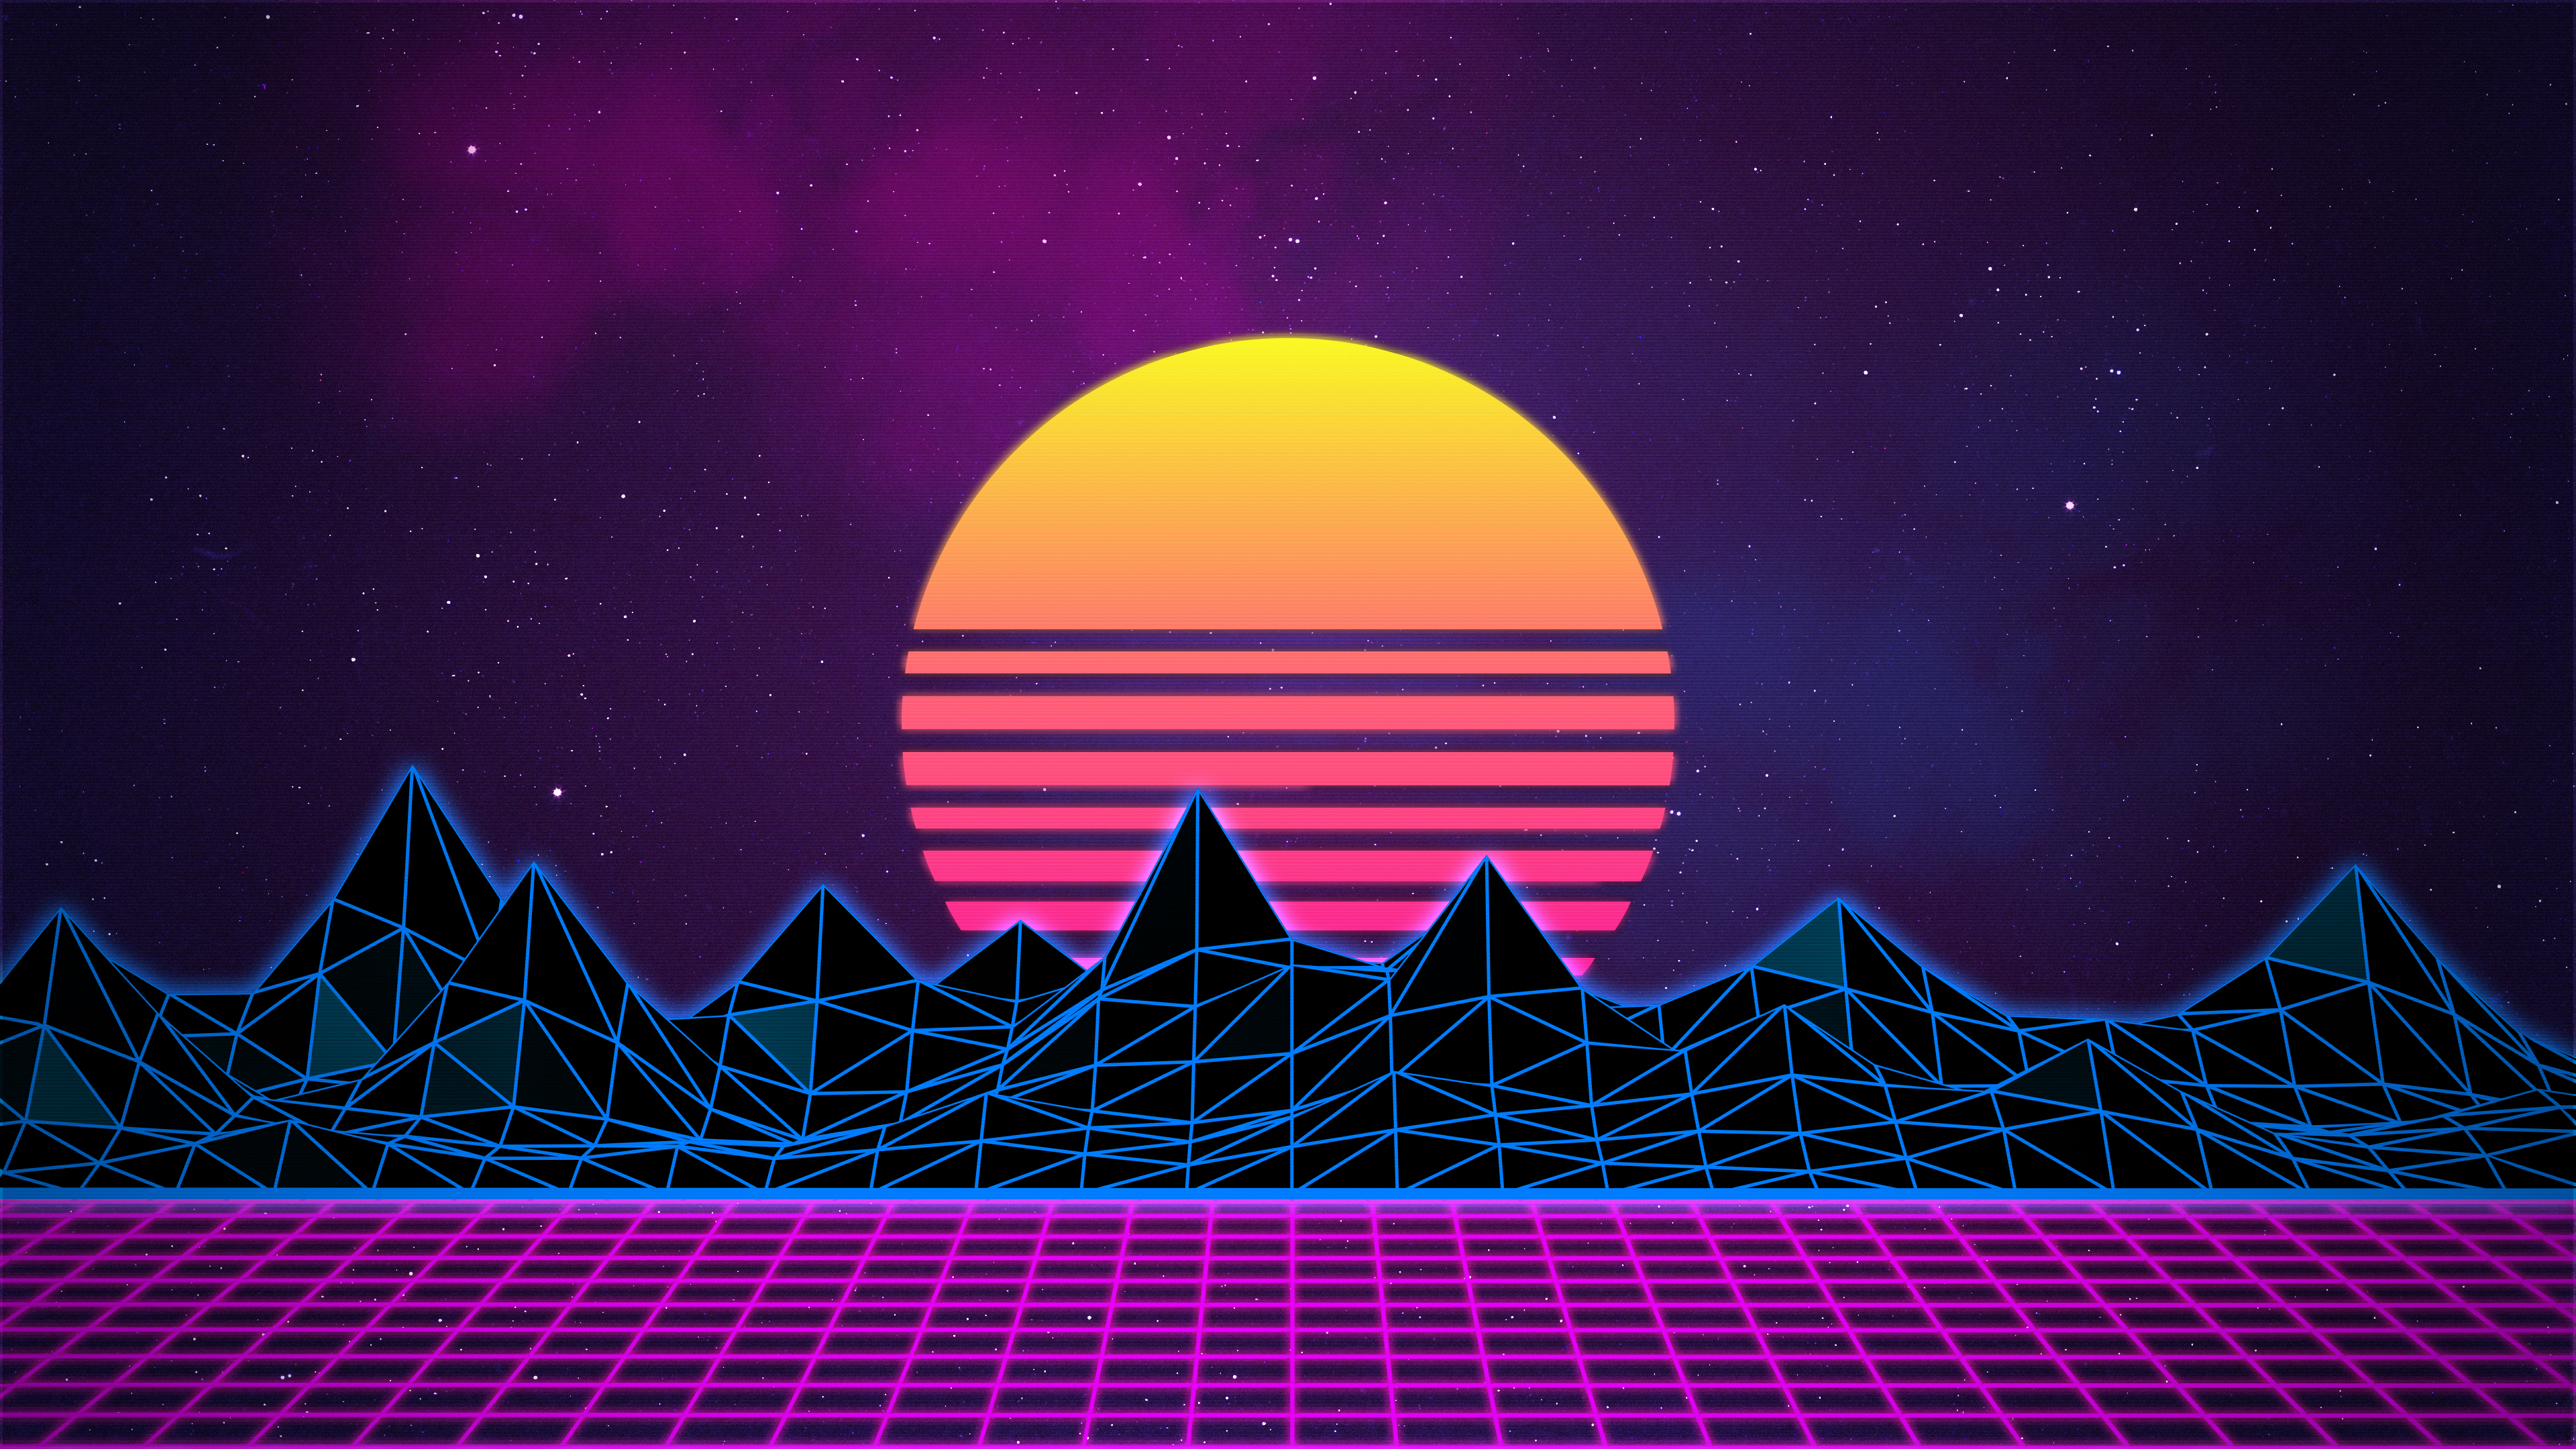 Retrowave Neon 80's Background - 4K